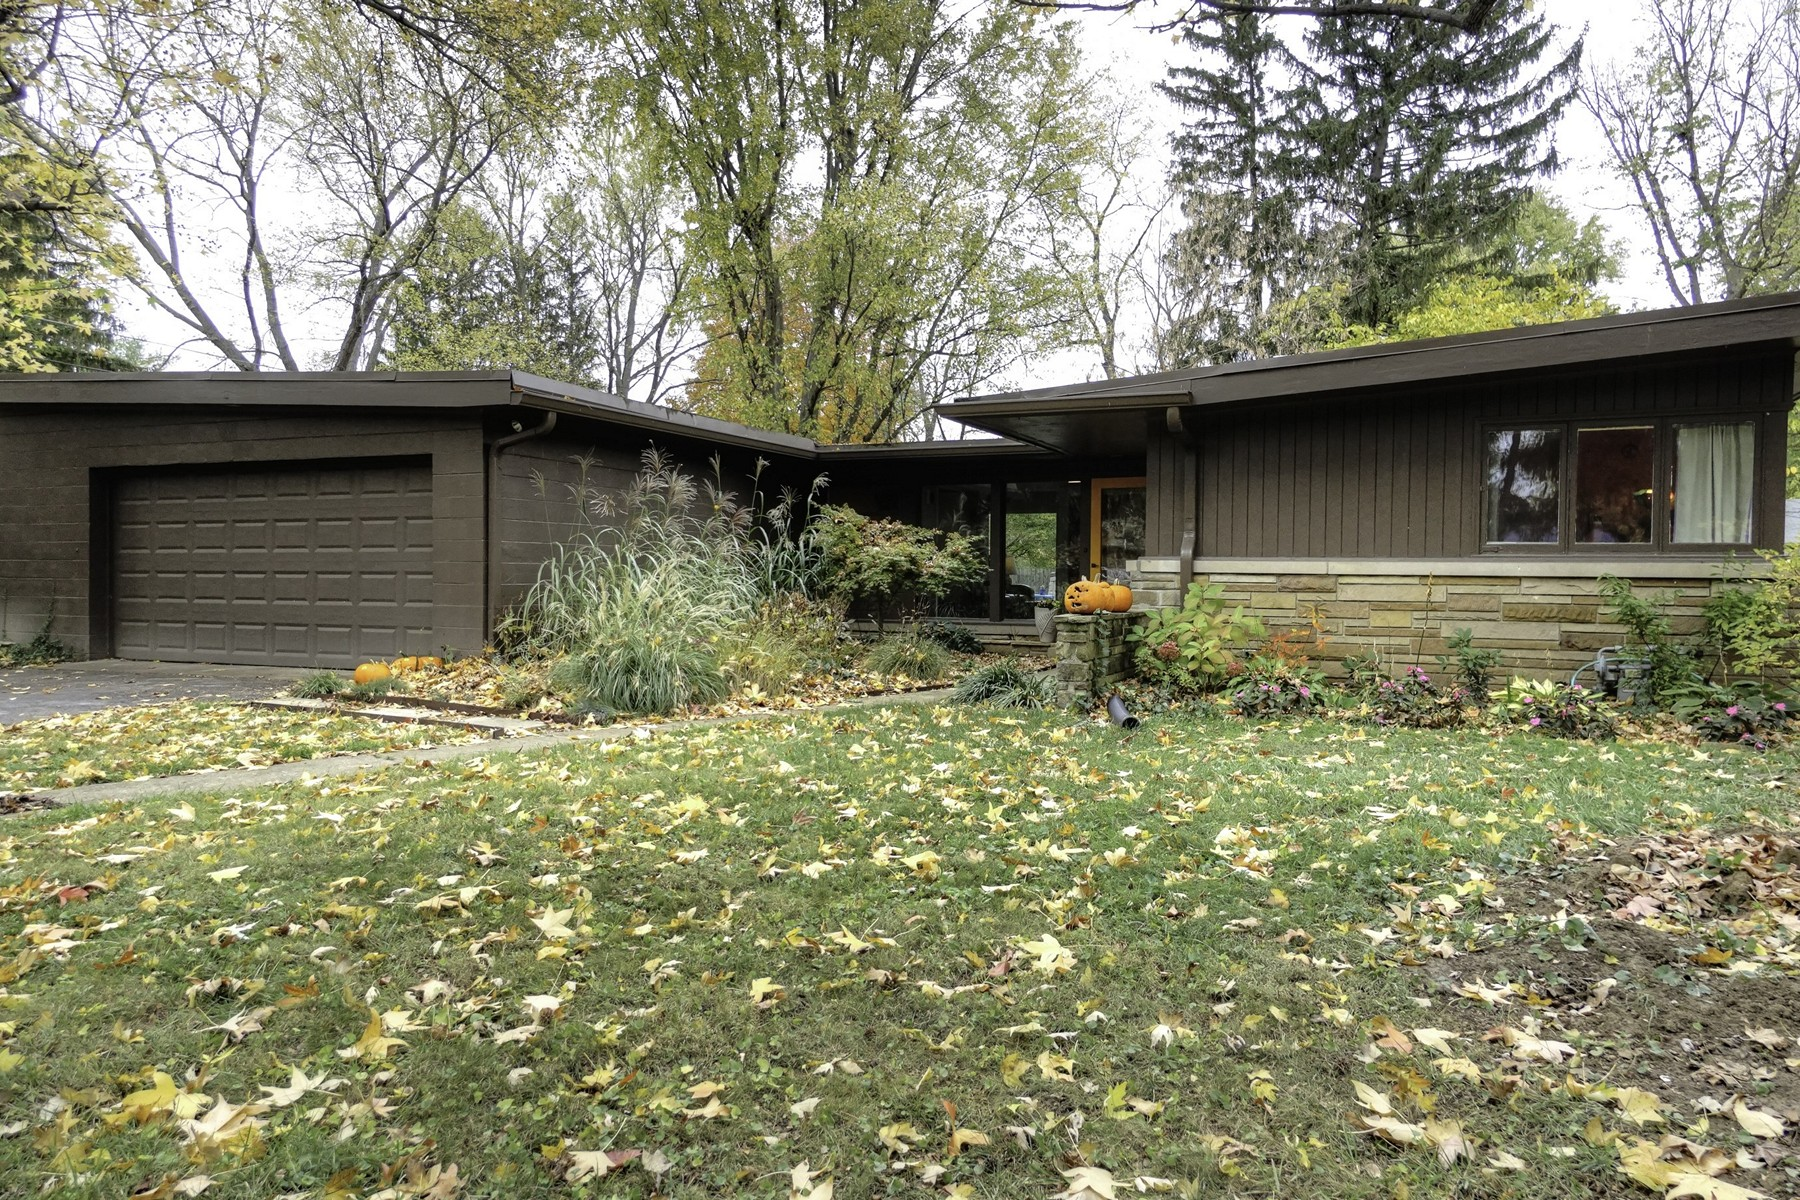 Single Family Home for Sale at Classic Mid-Century Modern 222 W. 73rd St. Indianapolis, Indiana 4620 United States